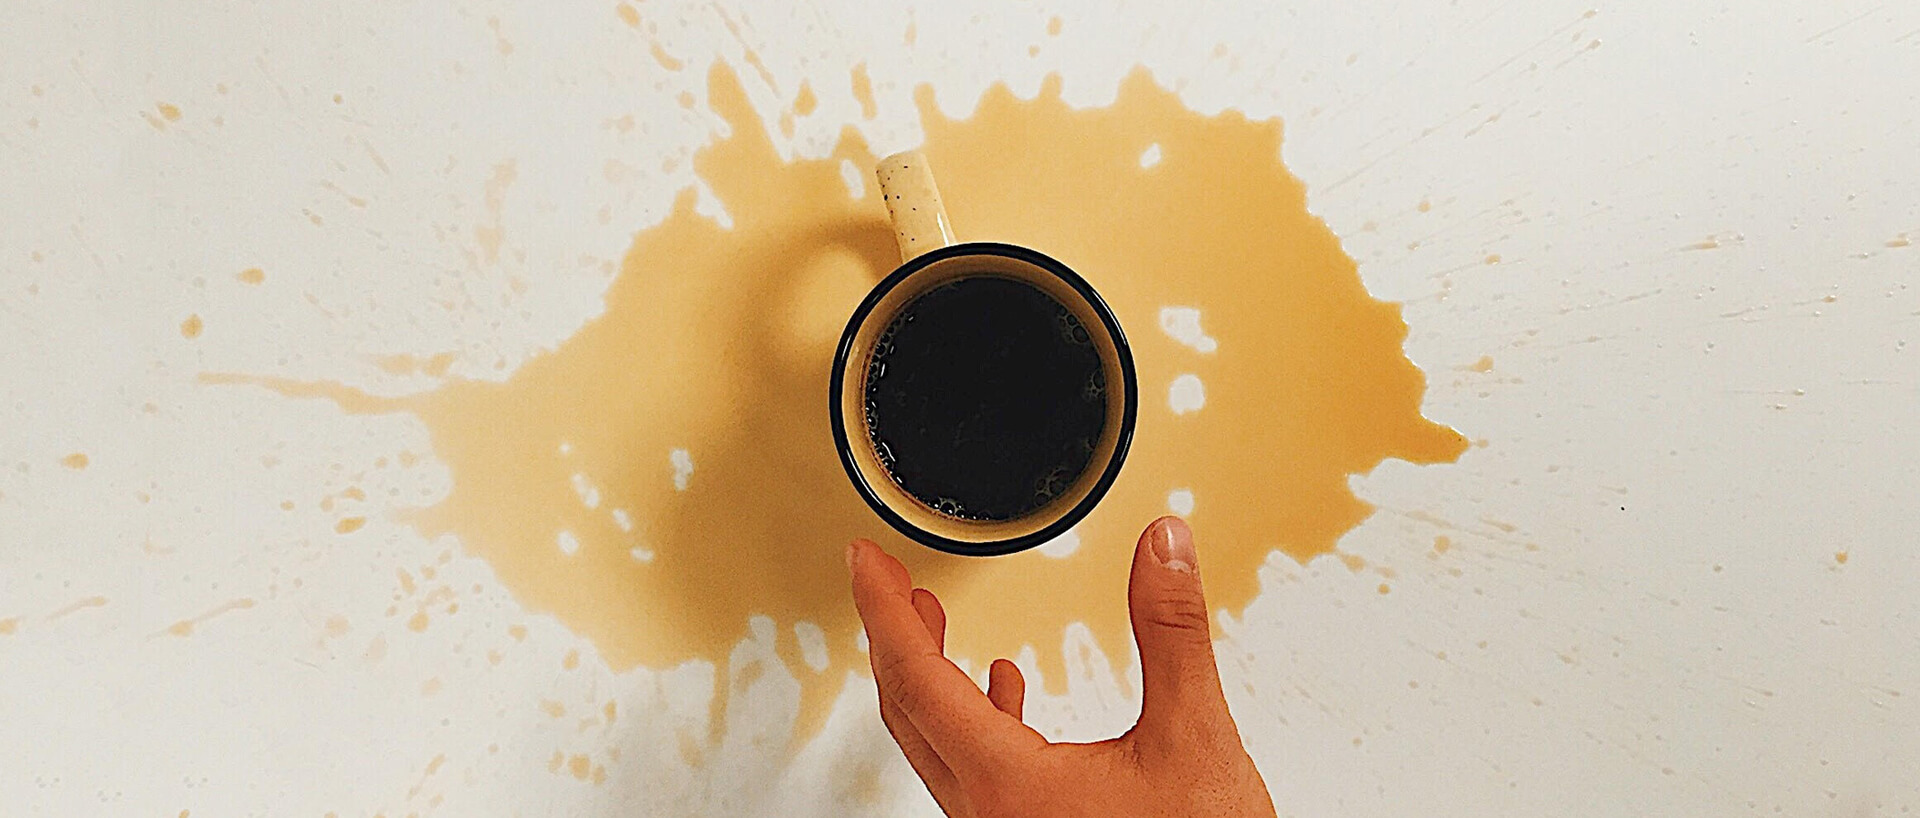 hand reaching for coffee cup that has spilled on the table